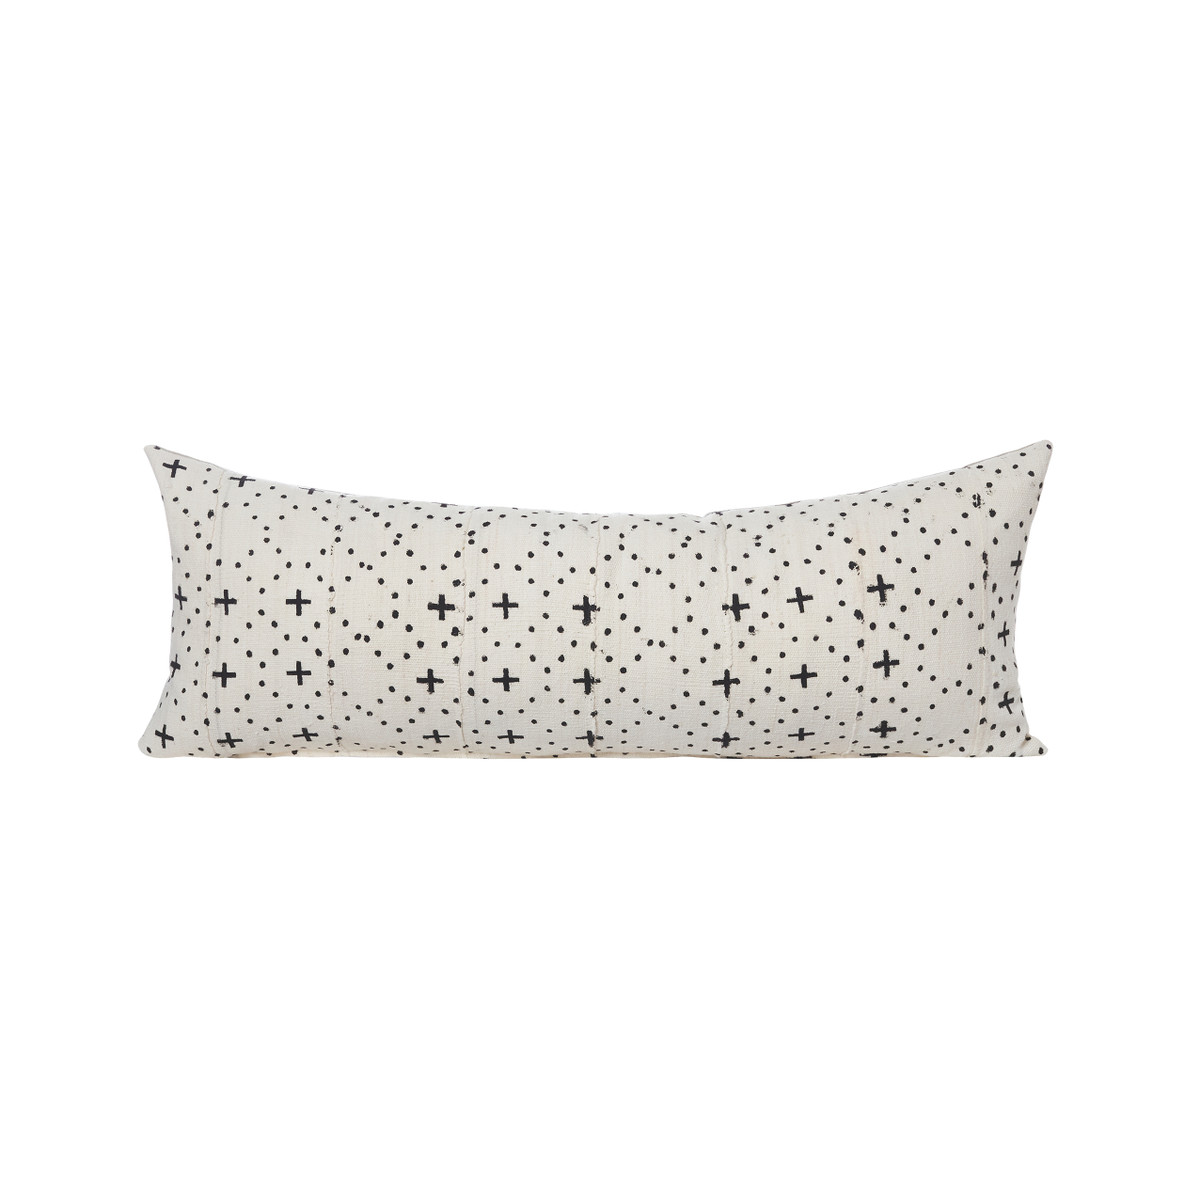 Cosmic Lumbar White and Black Mud cloth pillow - Front